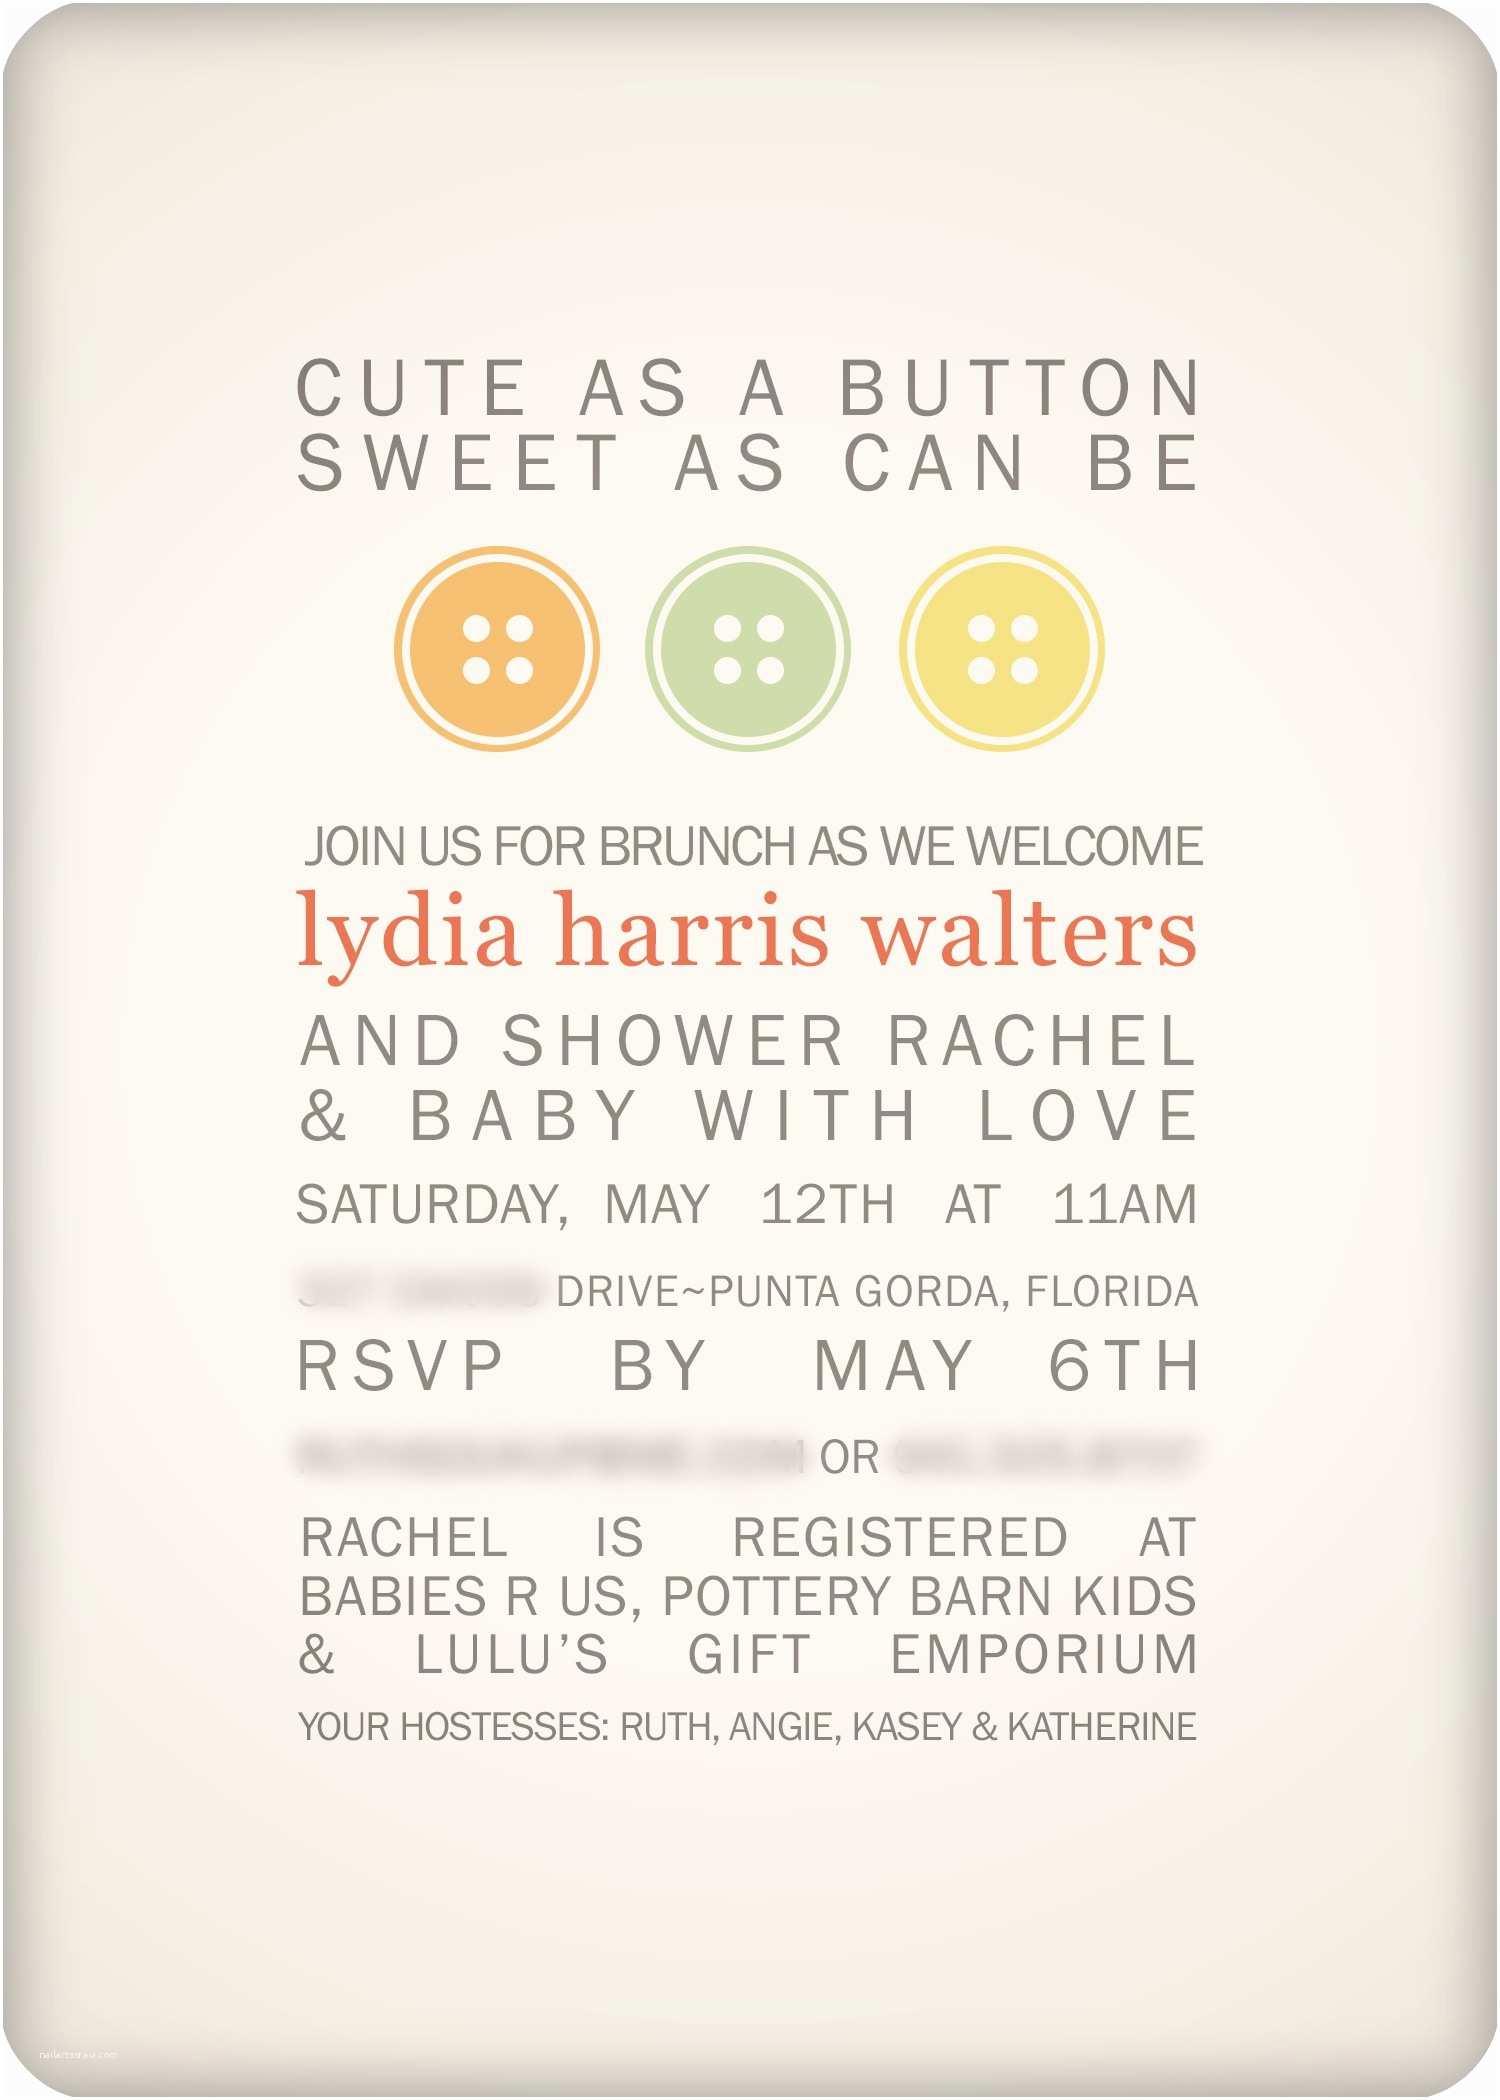 Cute as A button Baby Shower Invitations Baby Shower Invitations Free Printable Cute as A button